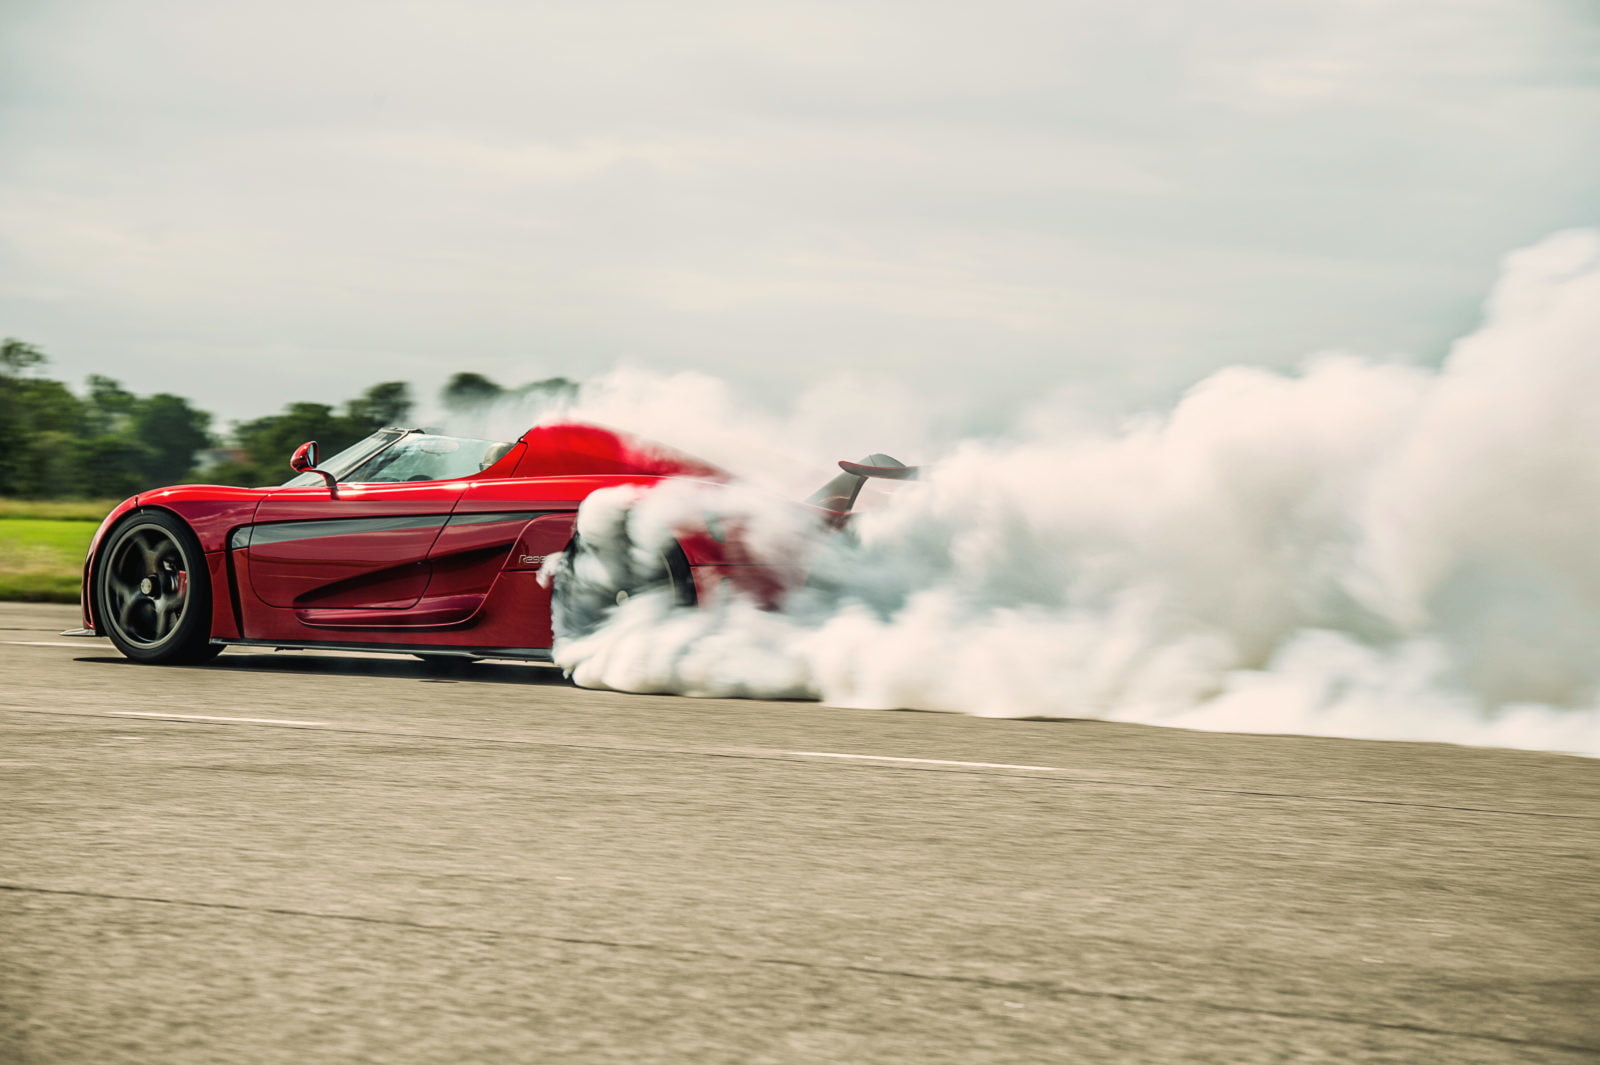 Supercar Builder Koenigsegg Focused On Reducing Delivery Time To Two Years Digital Trends